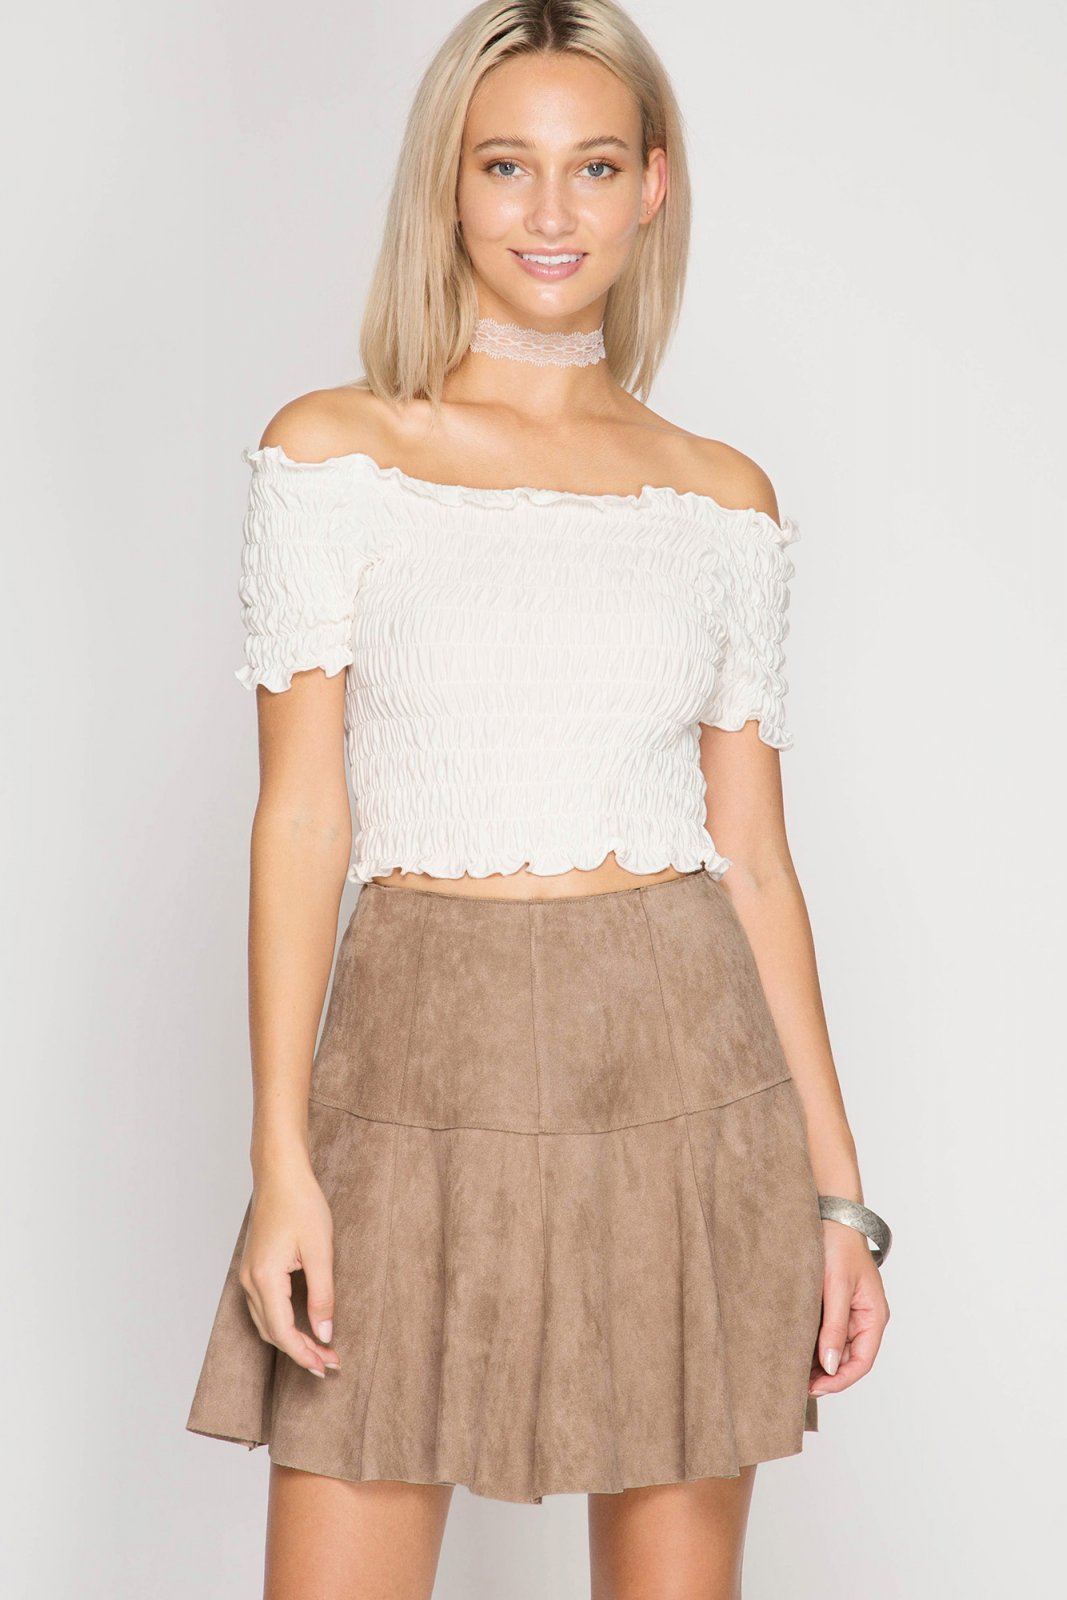 FAUX LEATHER Flare Mini Skirt TAUPE * JR / Ms / Adult PT